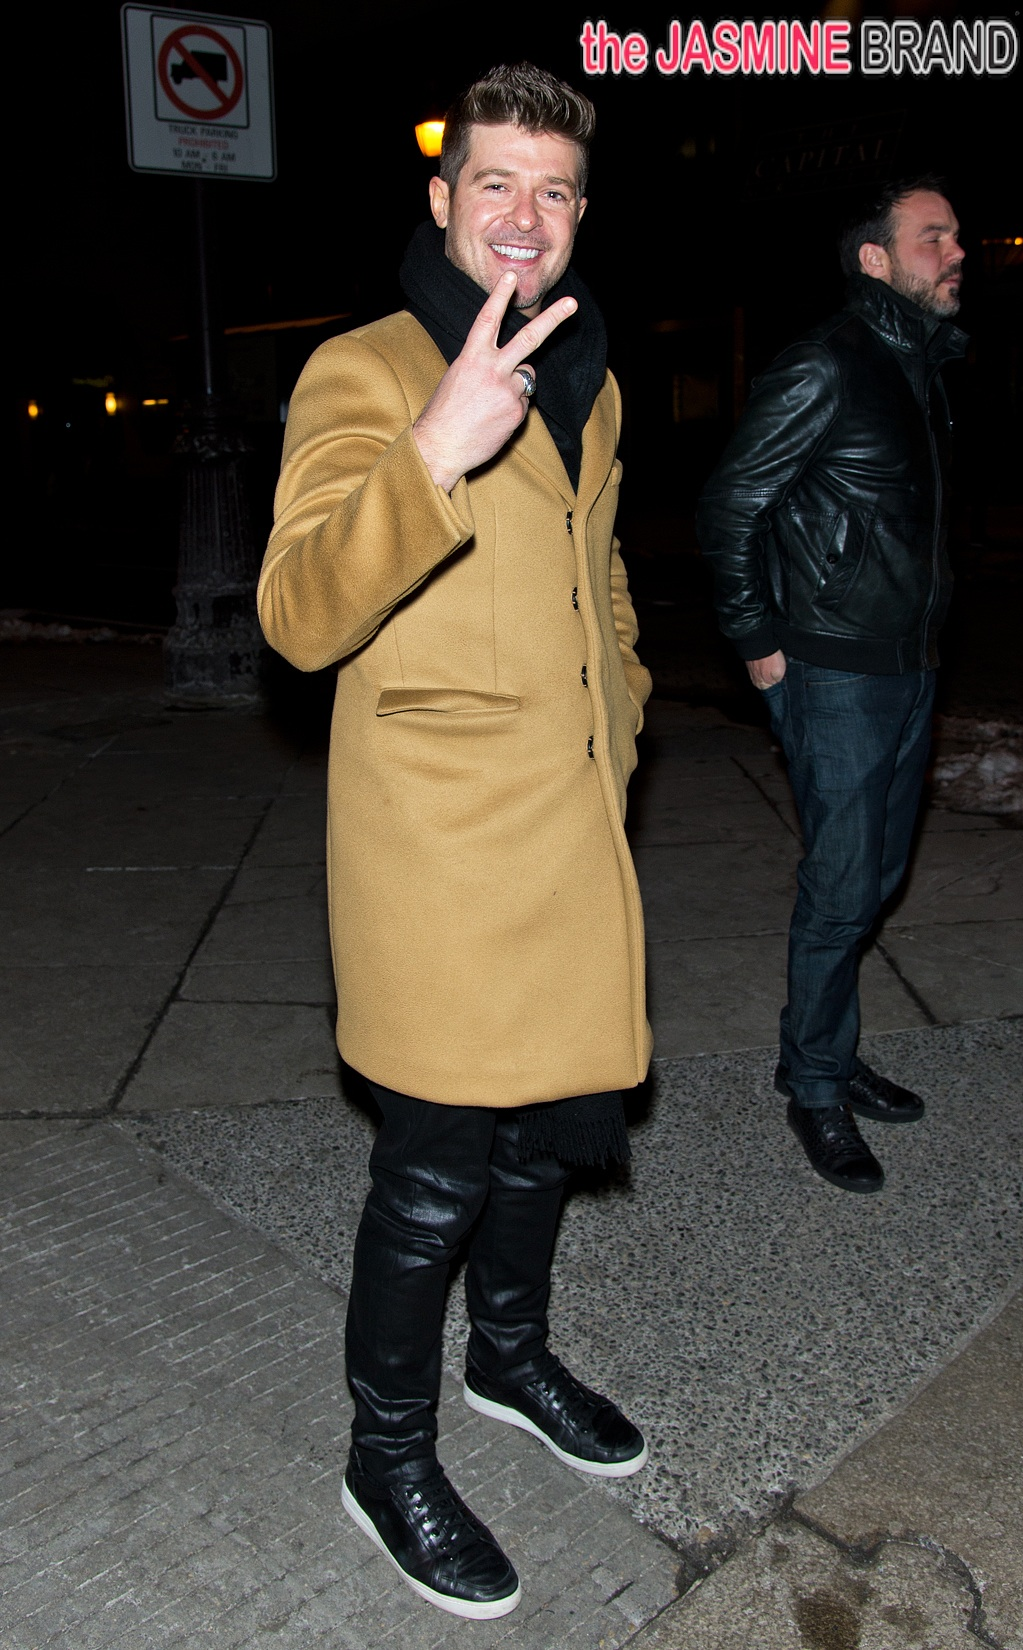 Robin Thicke takes a stroll on Broad Street in Philadelphia after having dinner at The Capital Grille restaurant